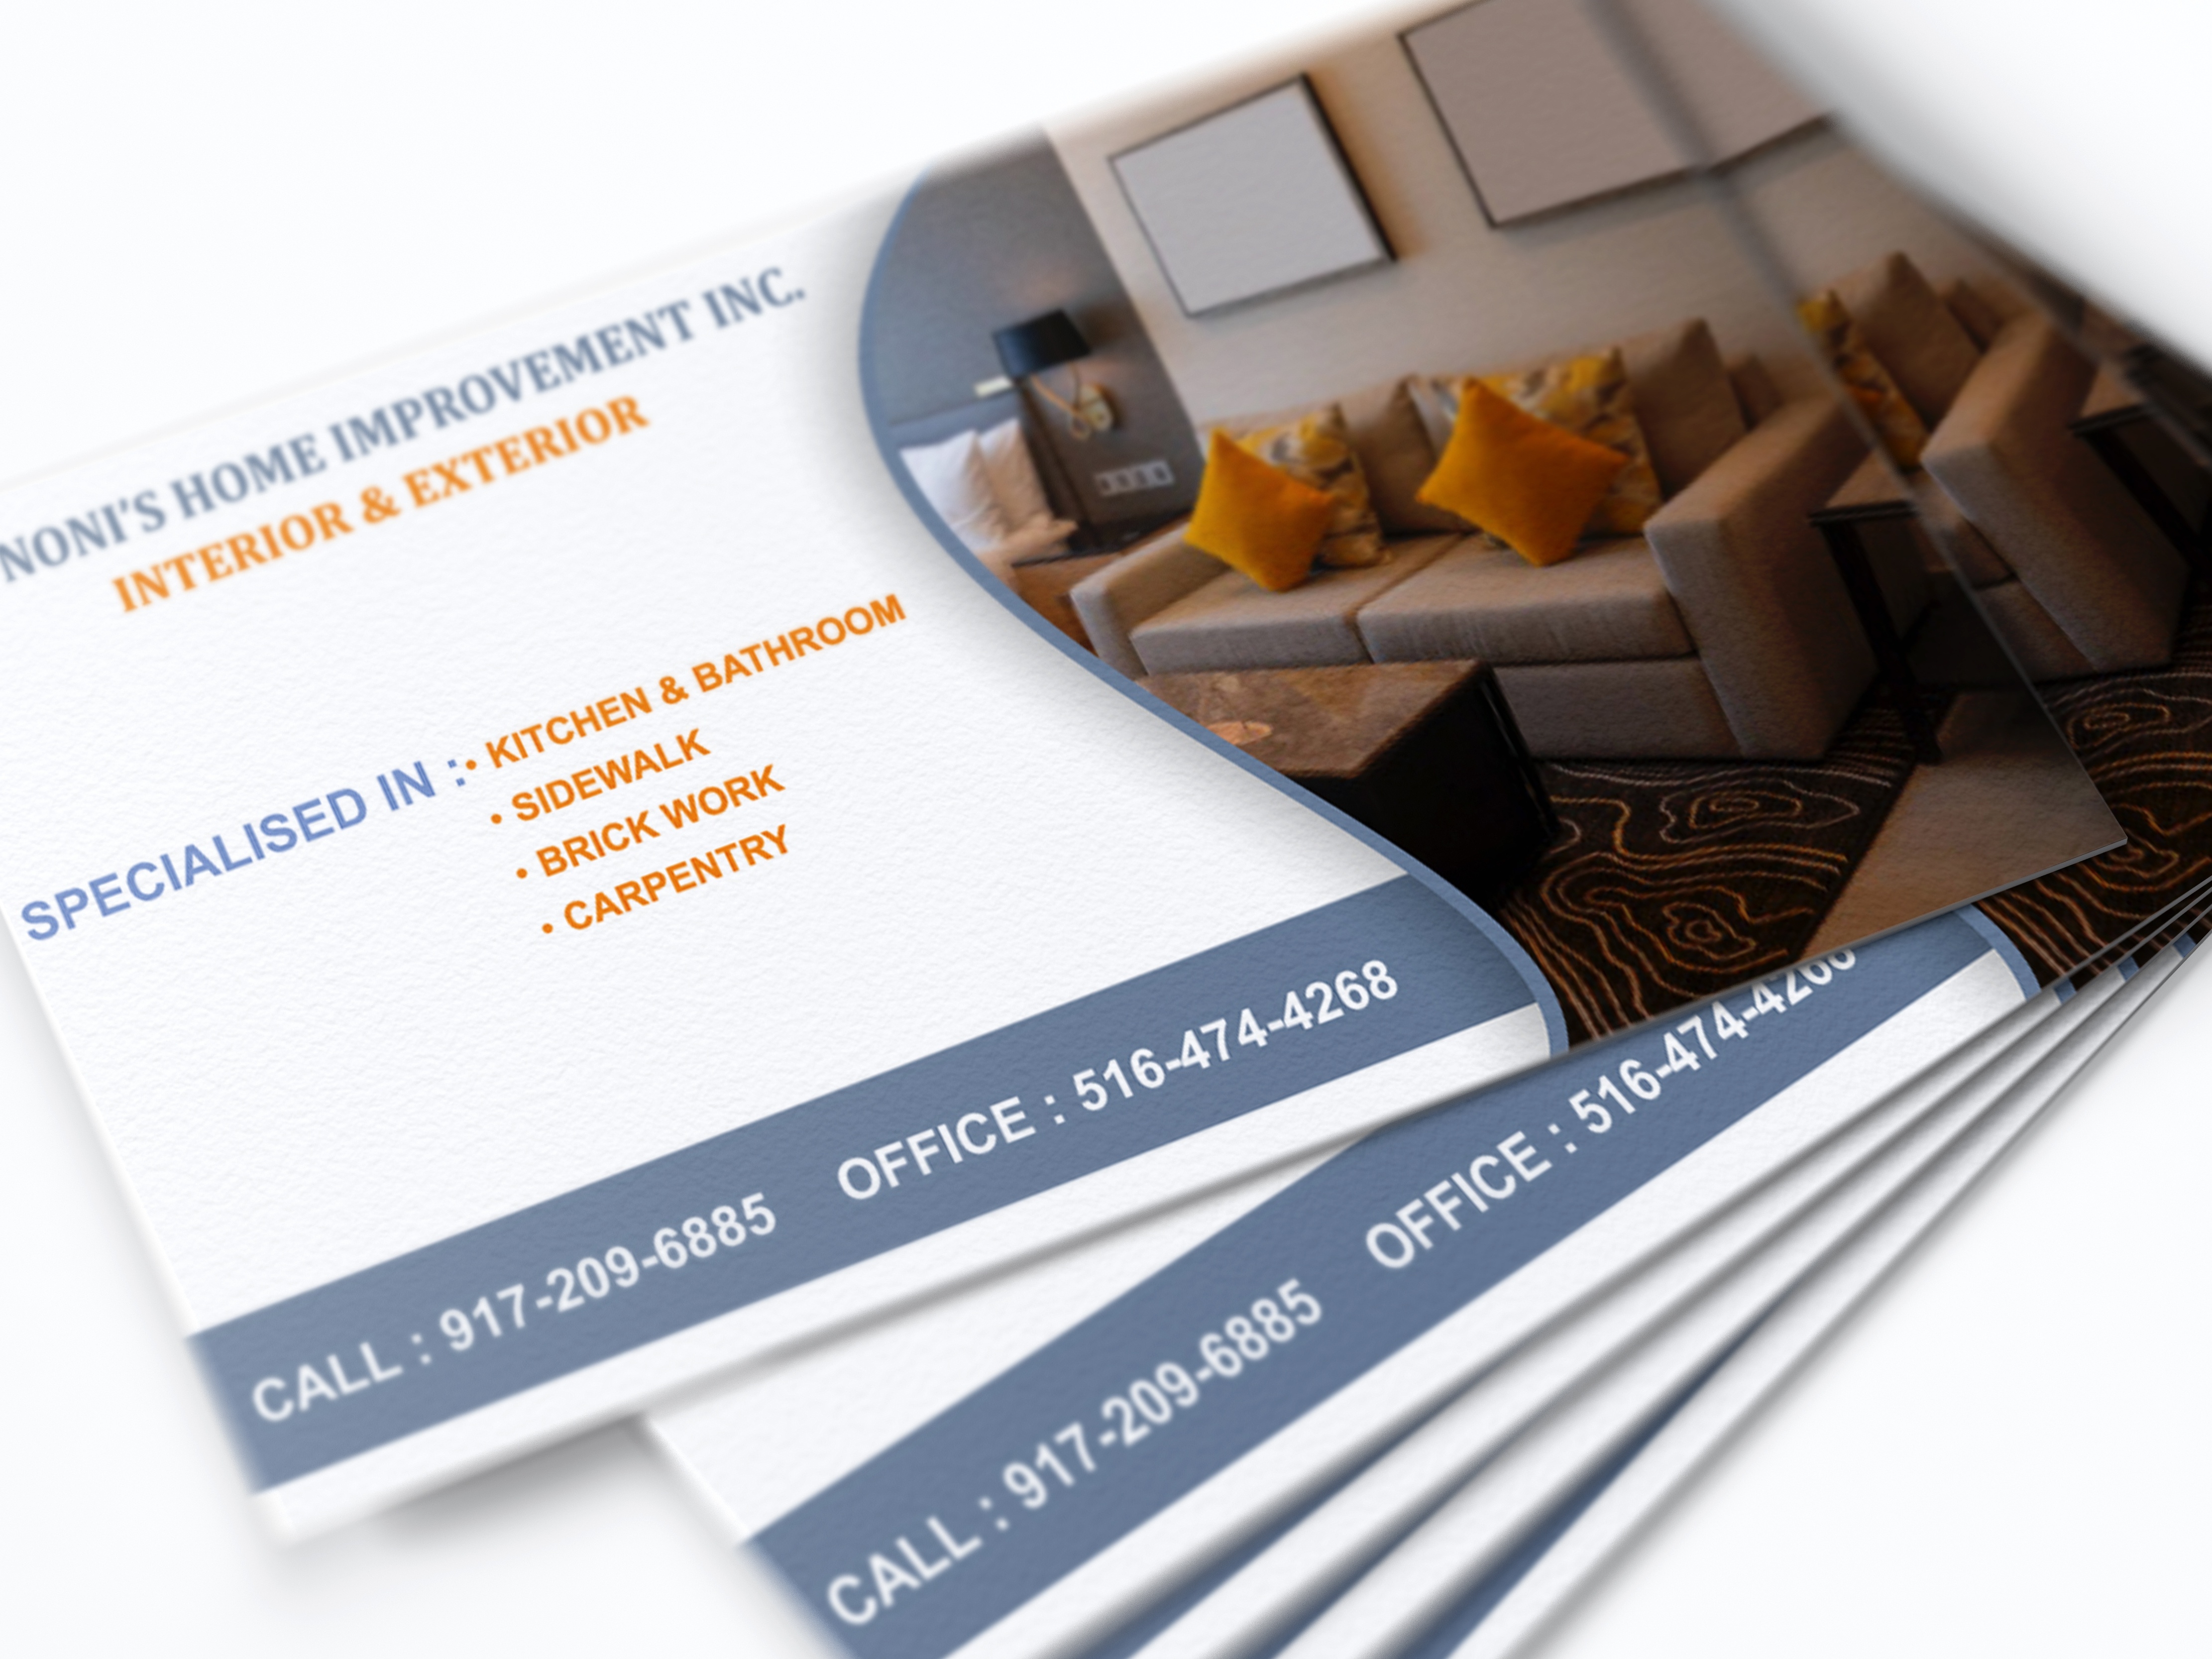 Business Card For Interior And Exterior Business By Ramneet Pal Kaur On Dribbble